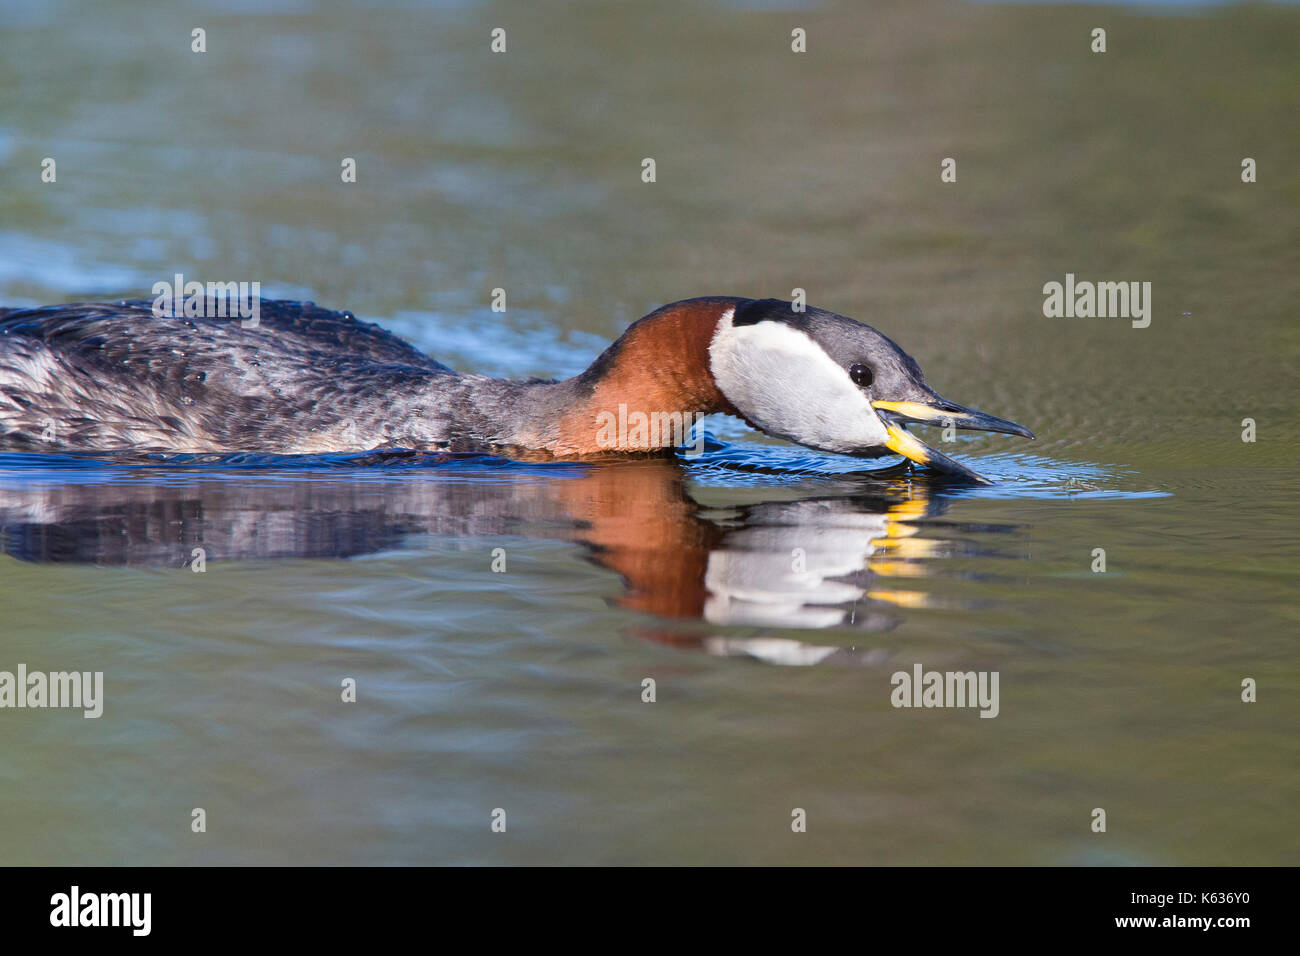 Red-necked Grebe (Podiceps grisegena), adult catching a mosquito on water surface - Stock Image